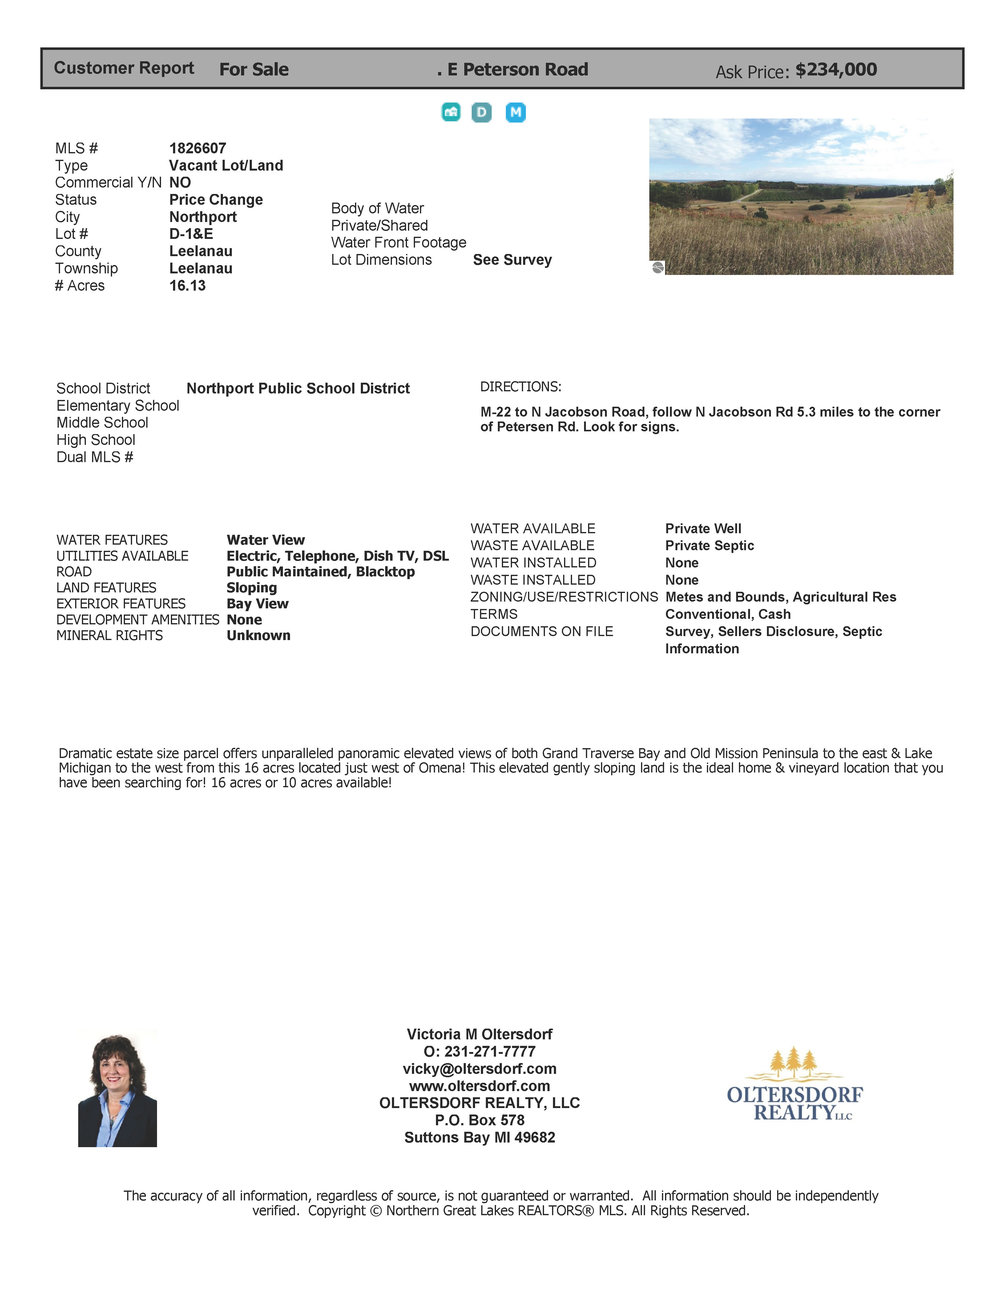 E Peterson Road, Northport - $234,000 16 acres.jpg